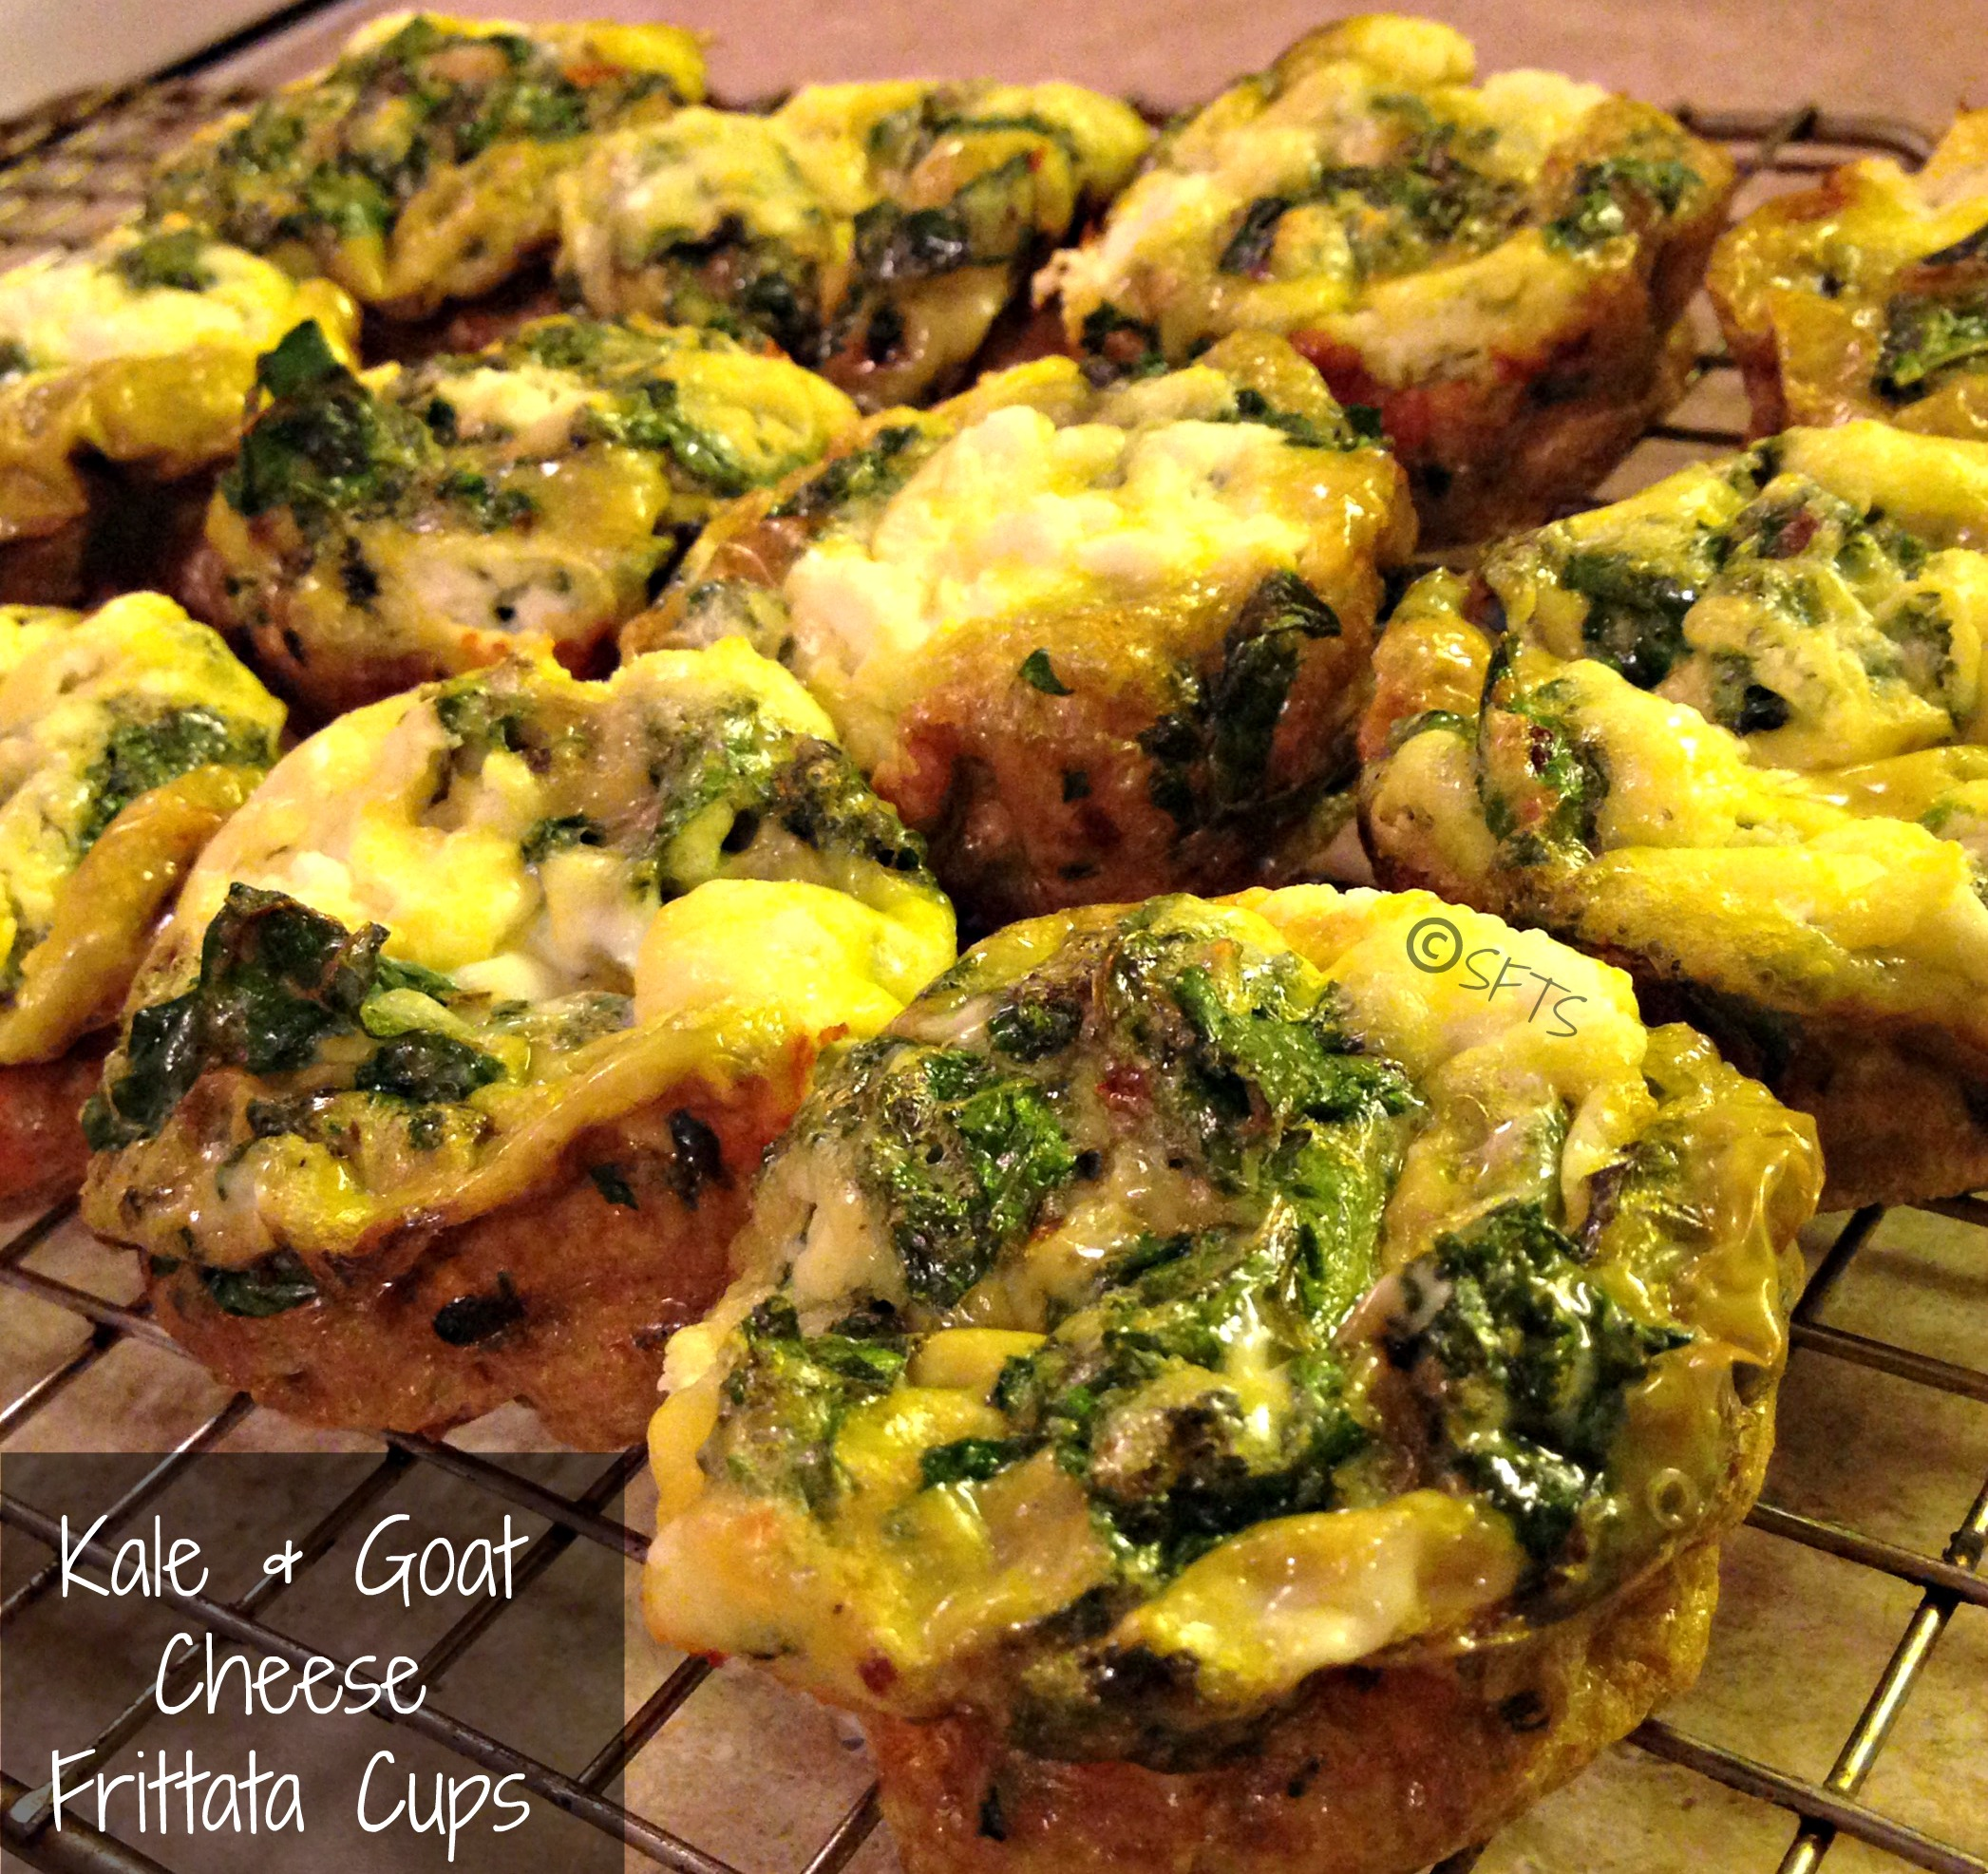 Kale and Goat Cheese Frittata Cups (recipe from The Kitchn )